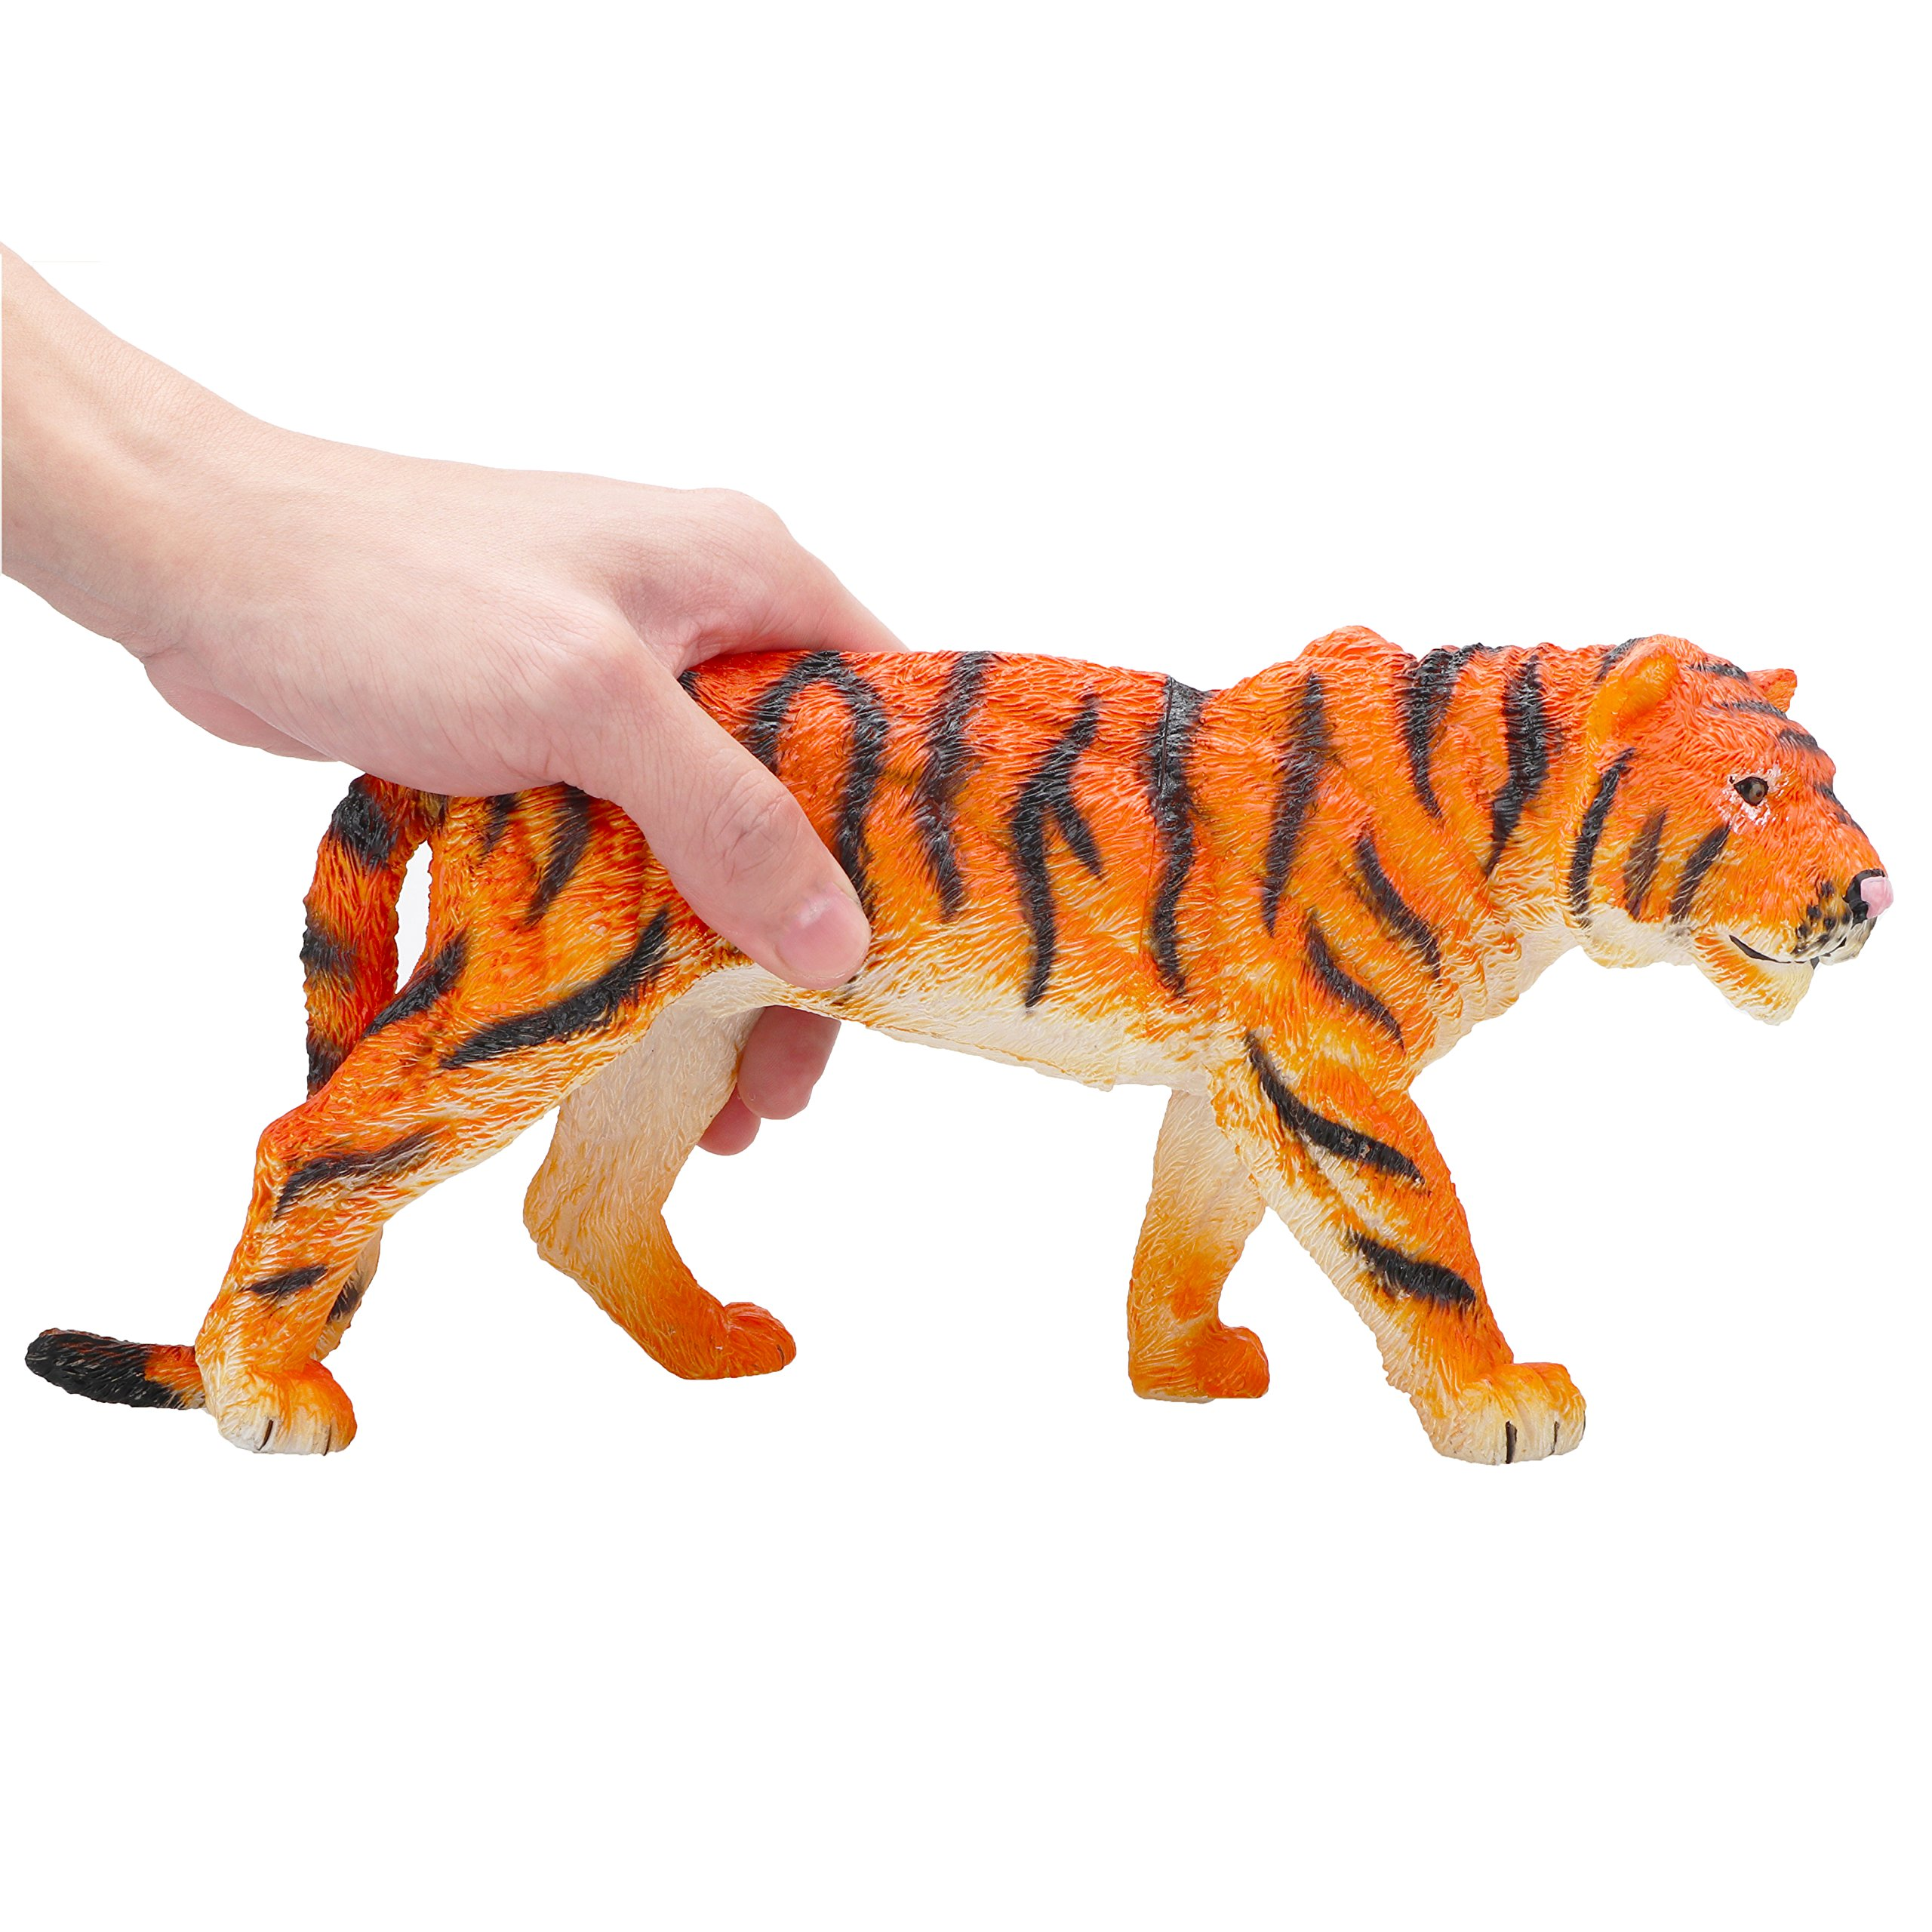 Toymany Large Size Tiger, 11.5'' High Realistic Plastic Animal Figure, Awesome Collection Decoration Learning Party Birthday Favors Gift For Boys Girls Children Toddler